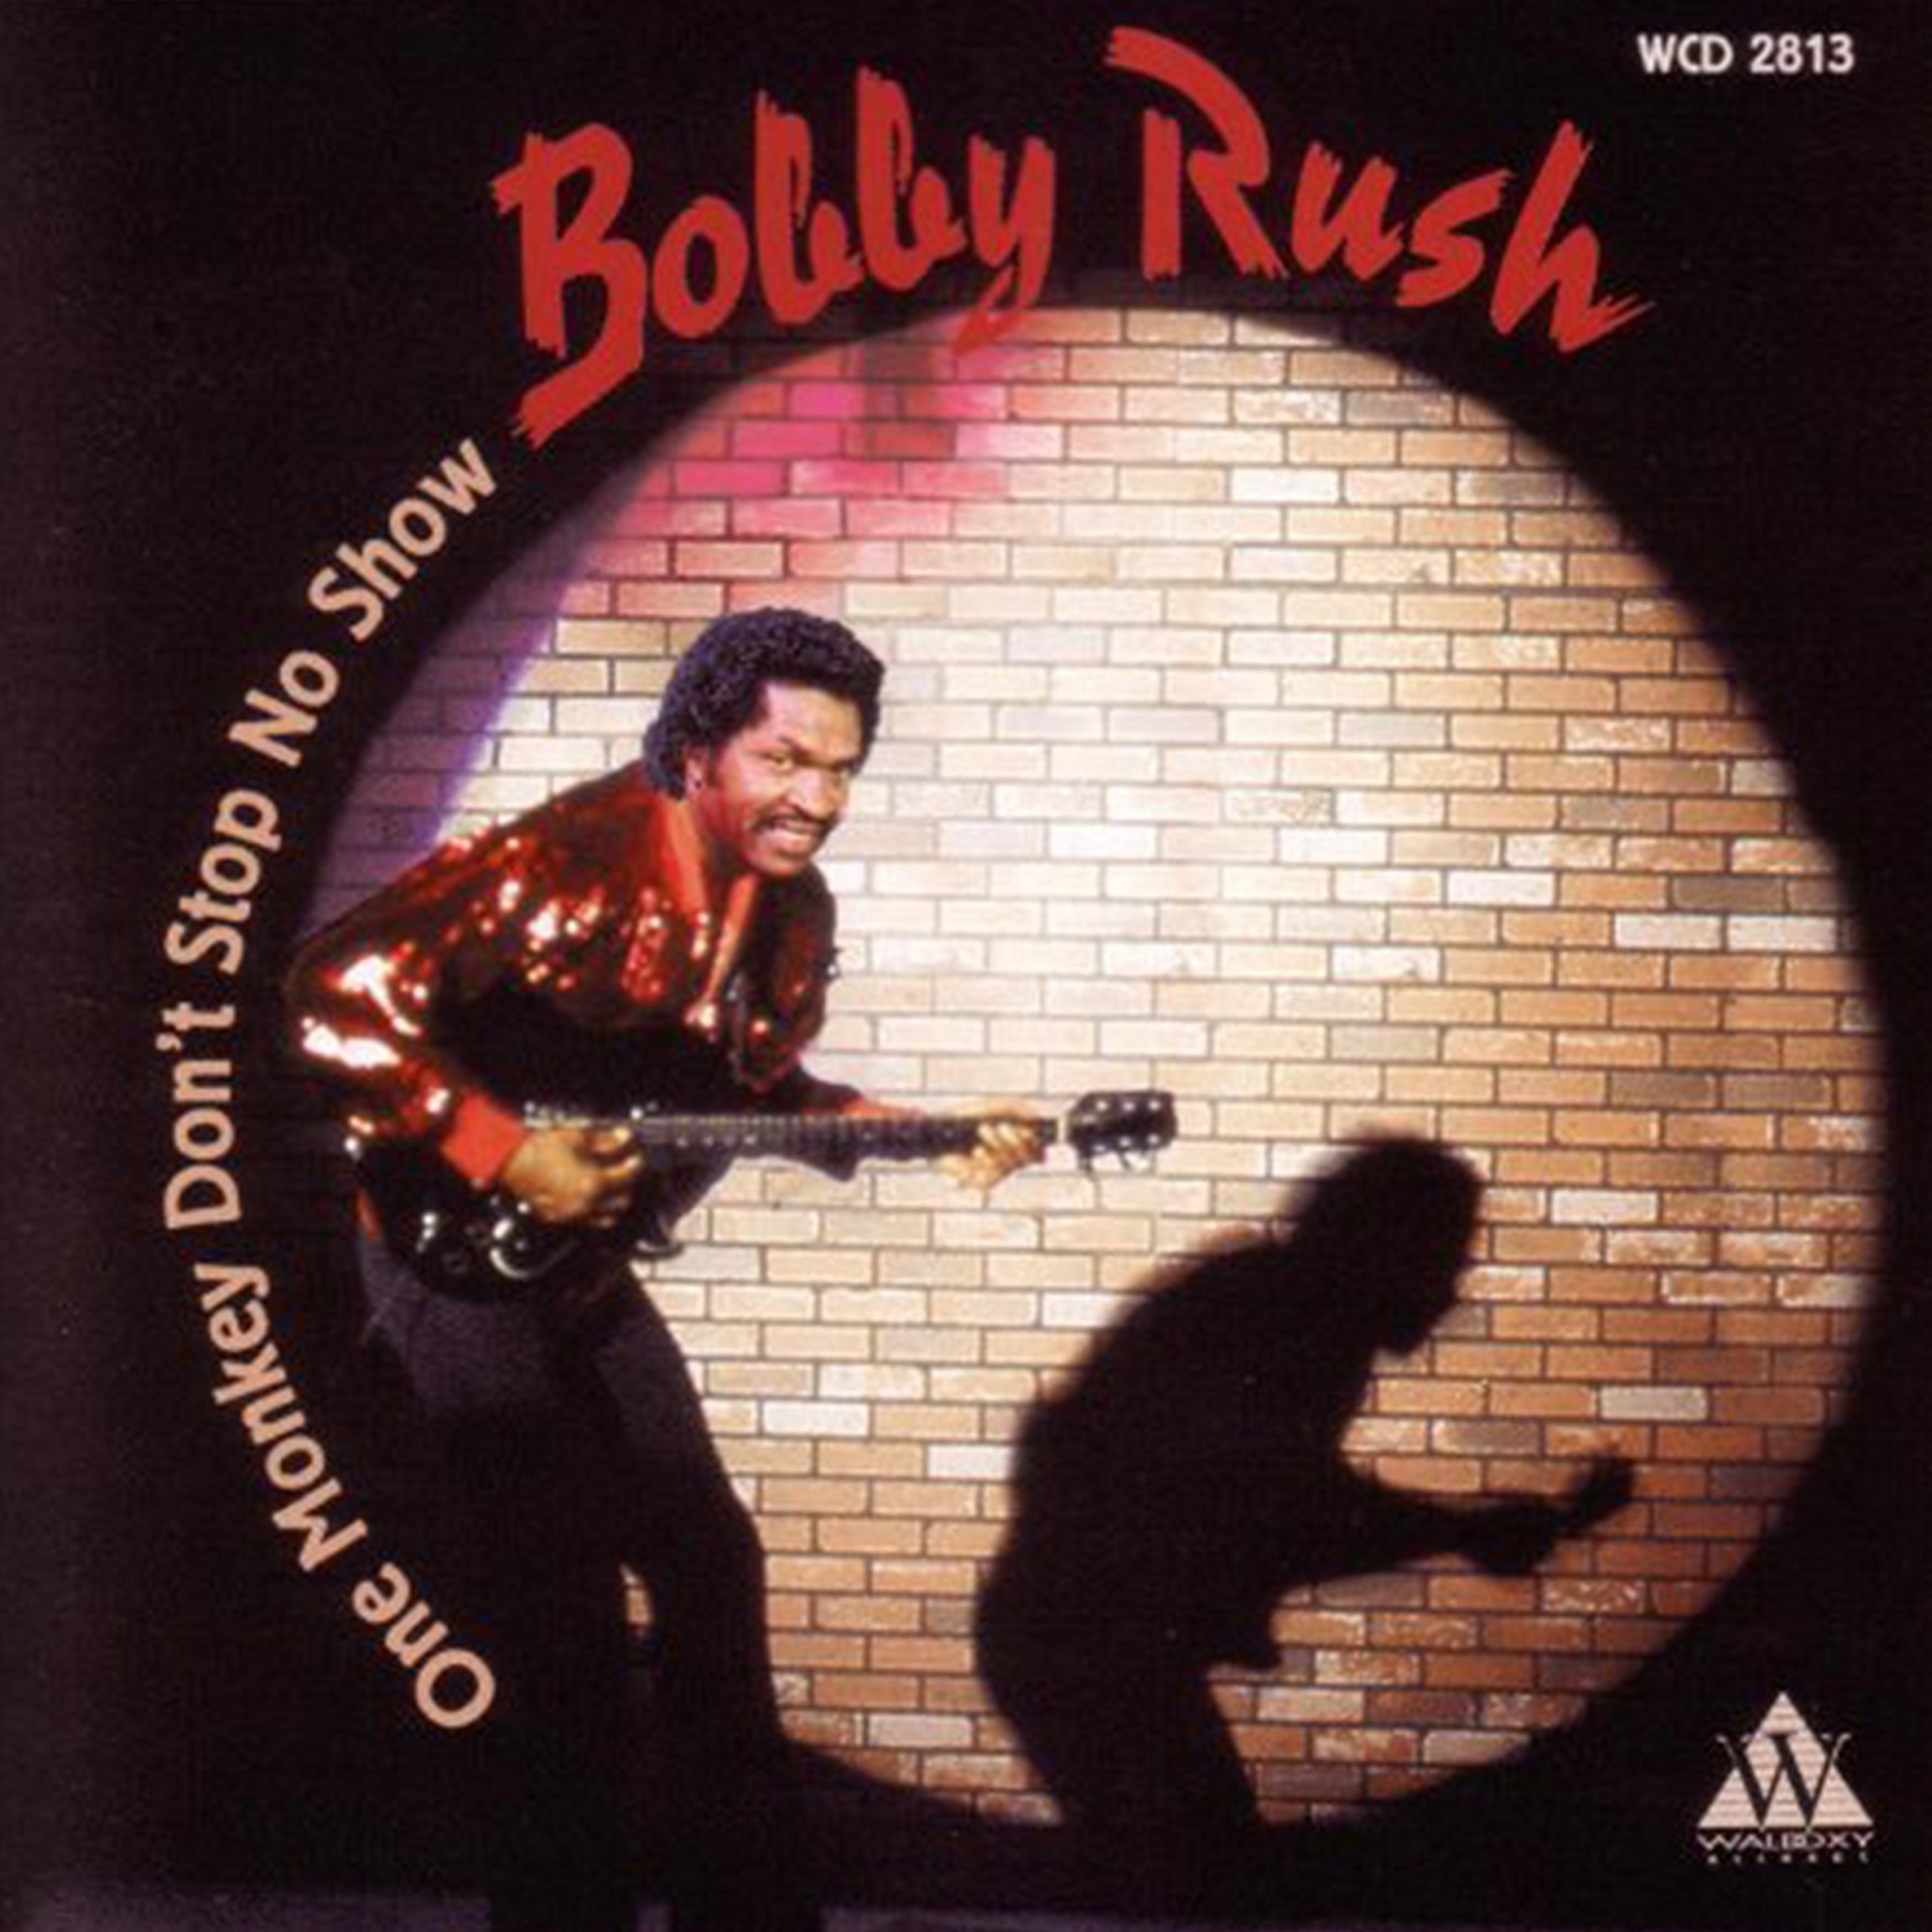 Bobby Rush – One Monkey Don't Stop No Show (1995) [FLAC]